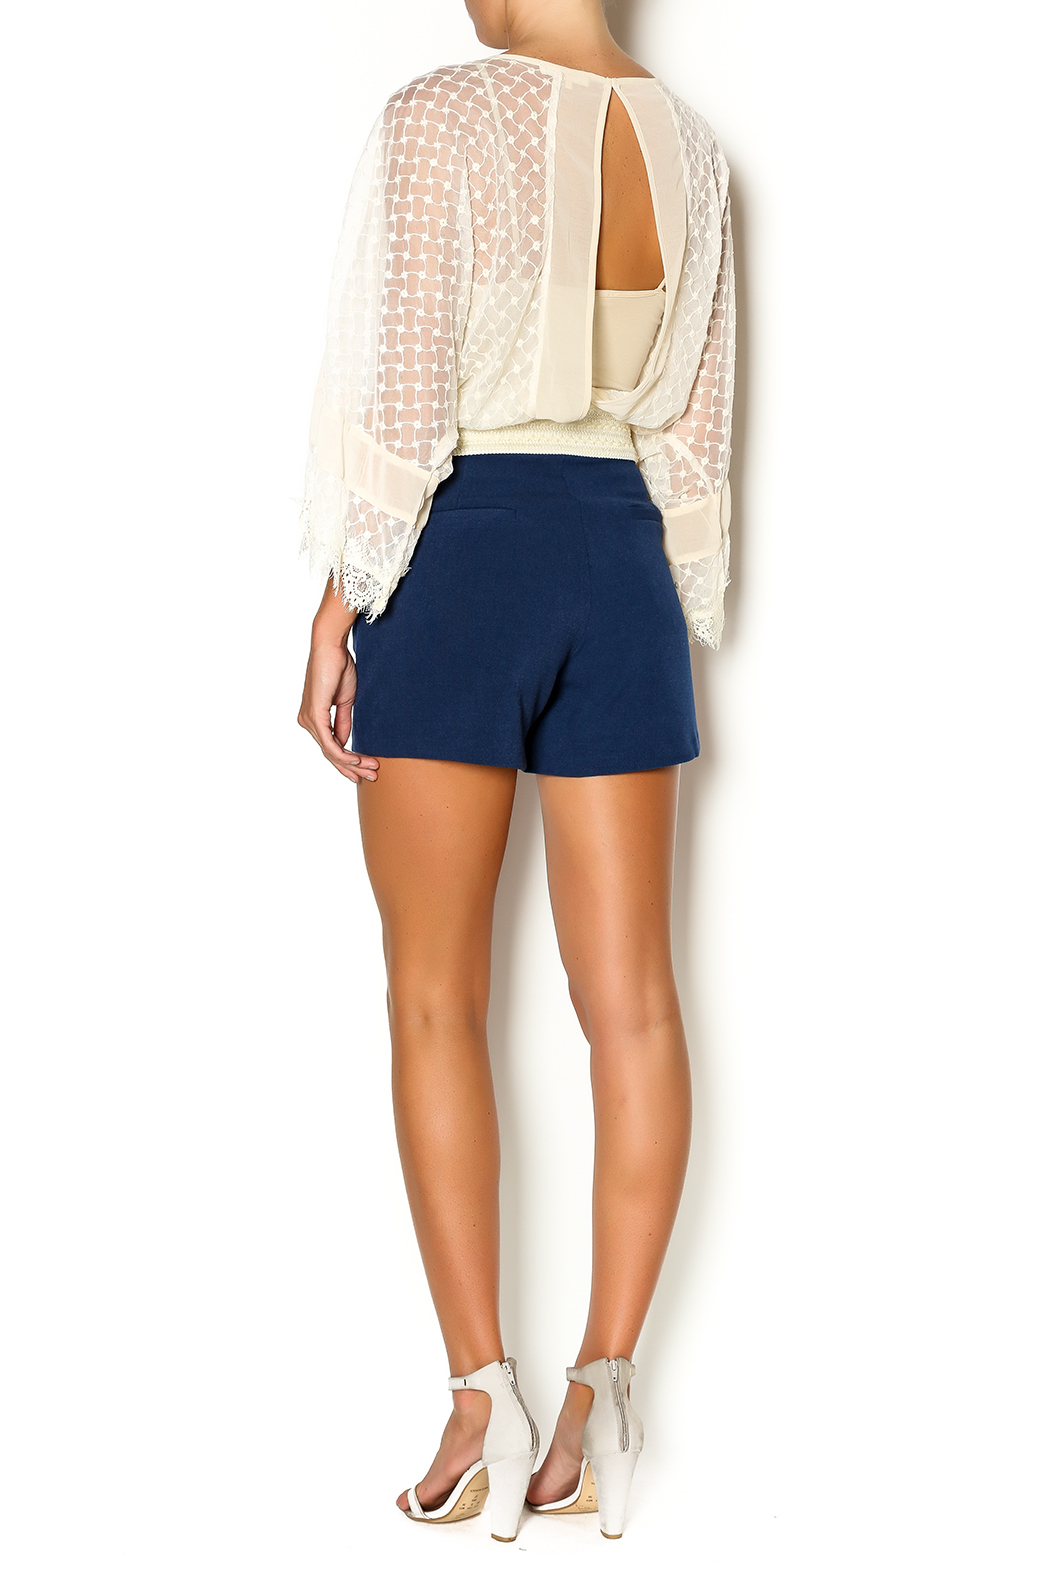 Bishop Young High Waisted Shorts From Washington By